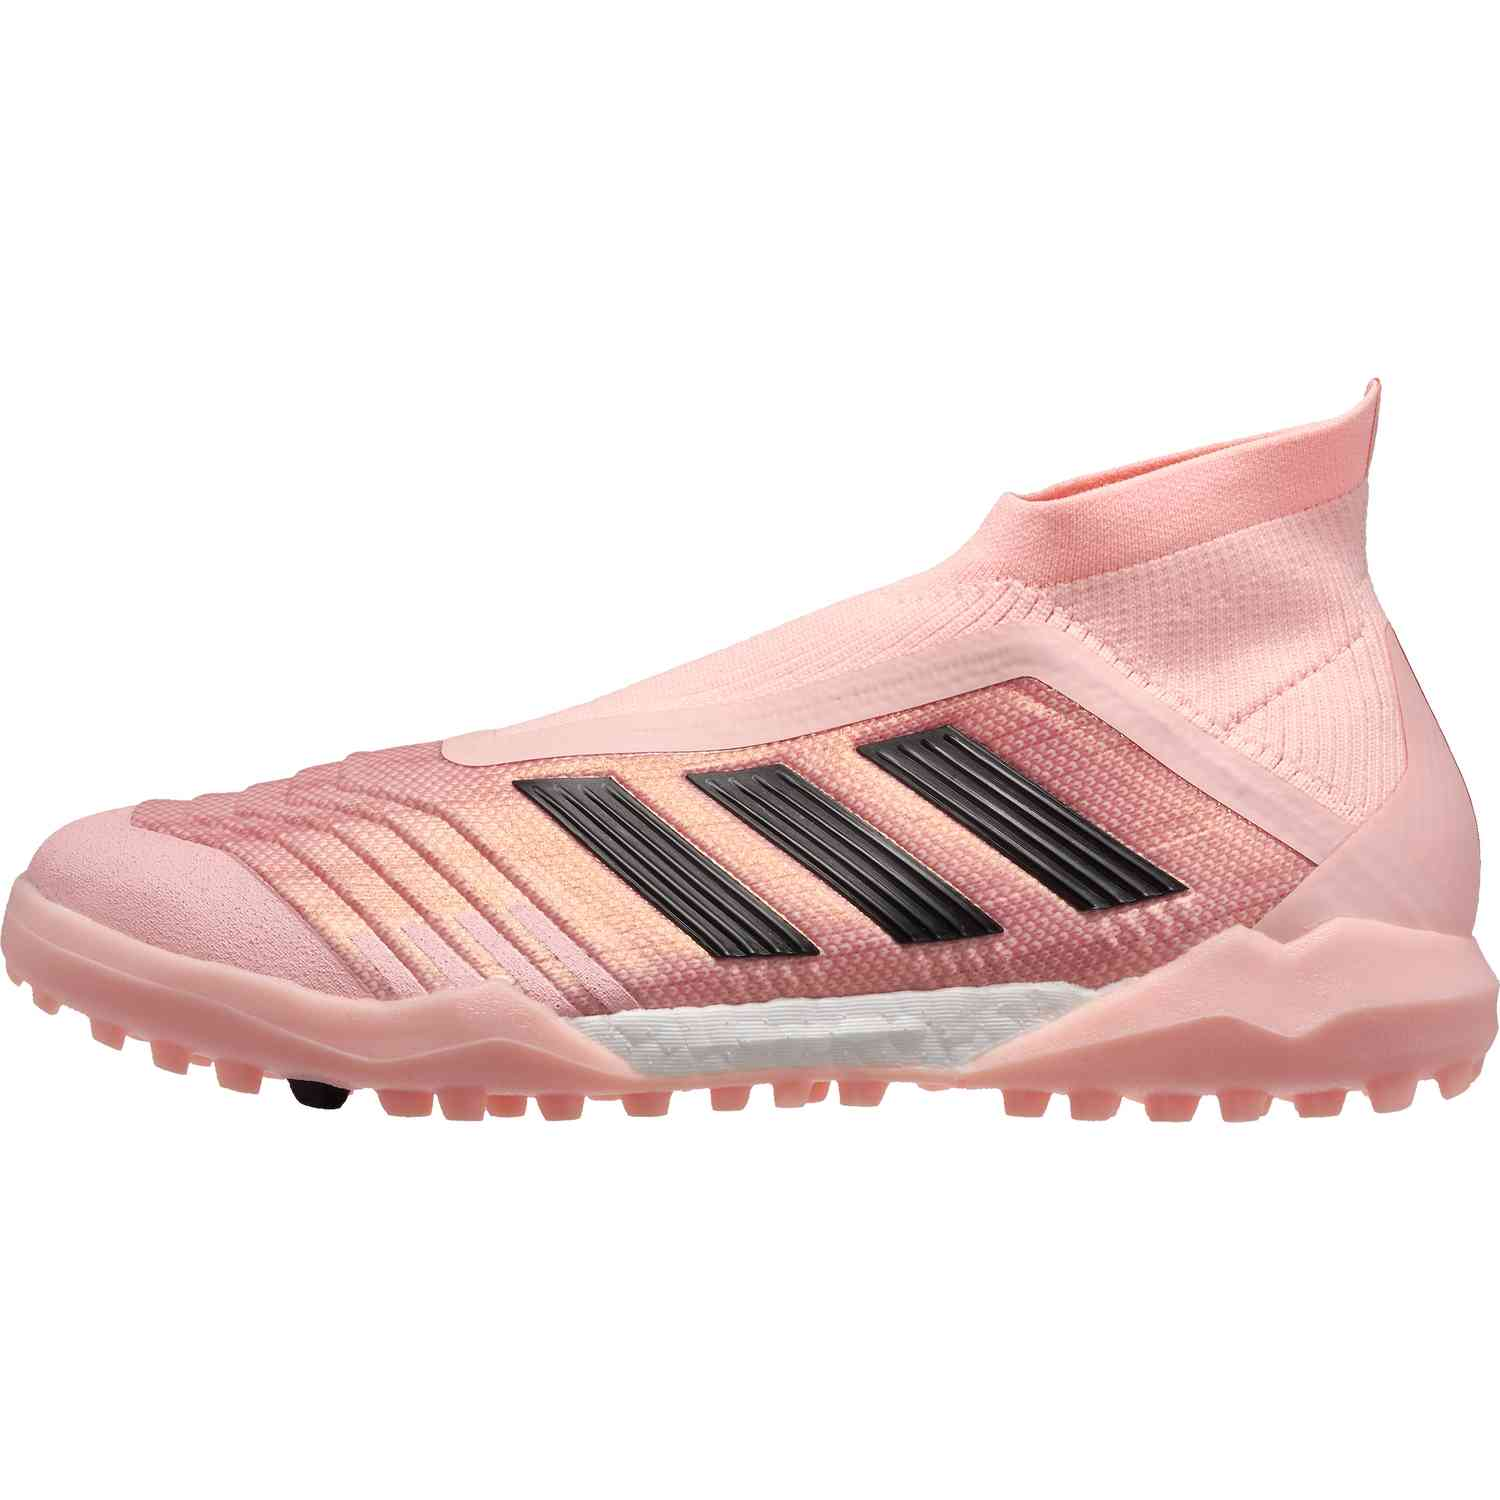 elegant shoes closer at authentic quality adidas Predator Tango 18+ TF - Clear Orange/Black/Trace Pink ...